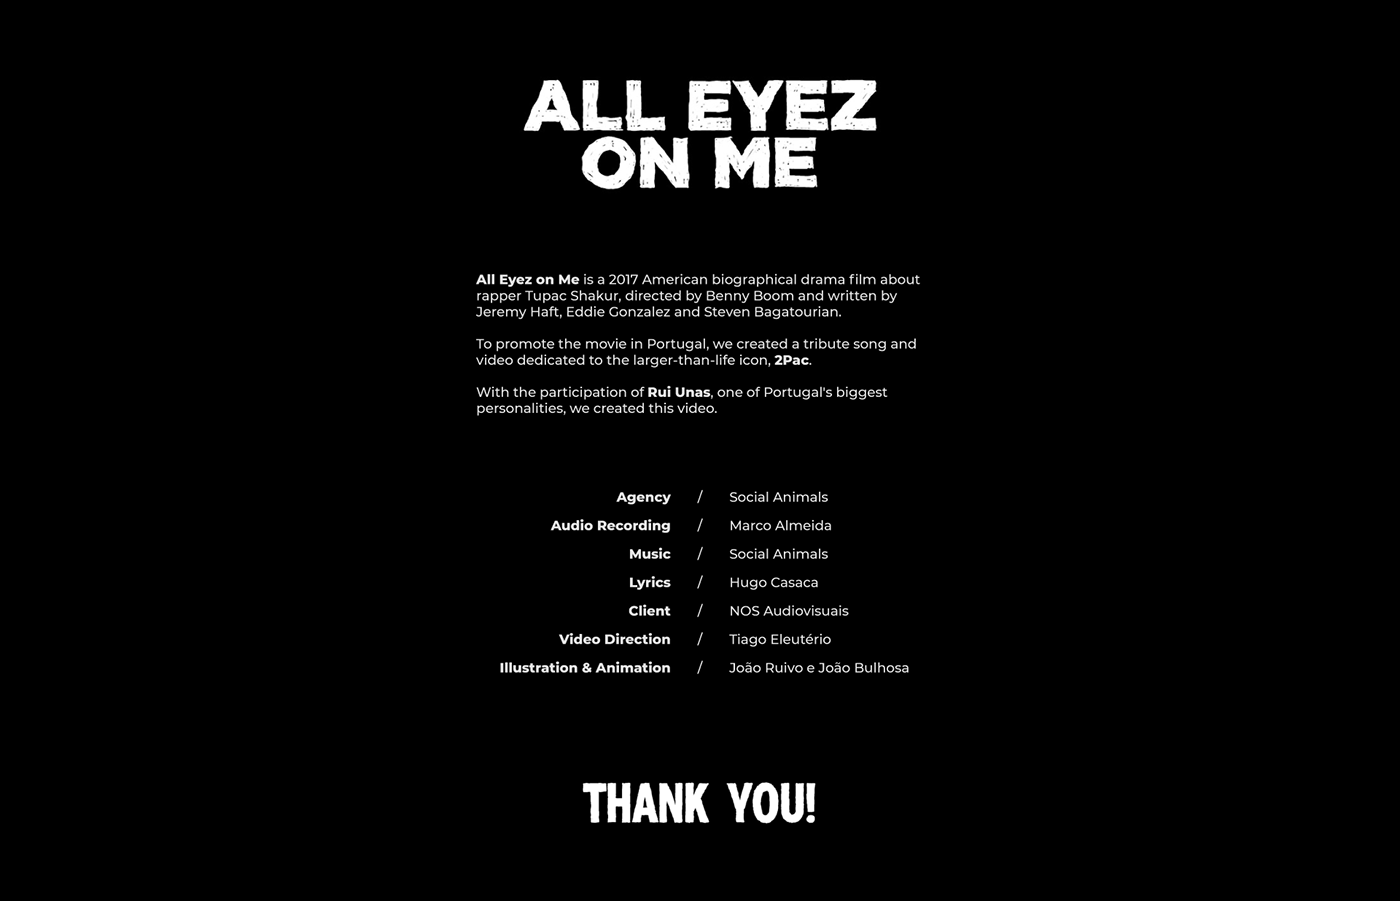 All Eyez on Me - Project